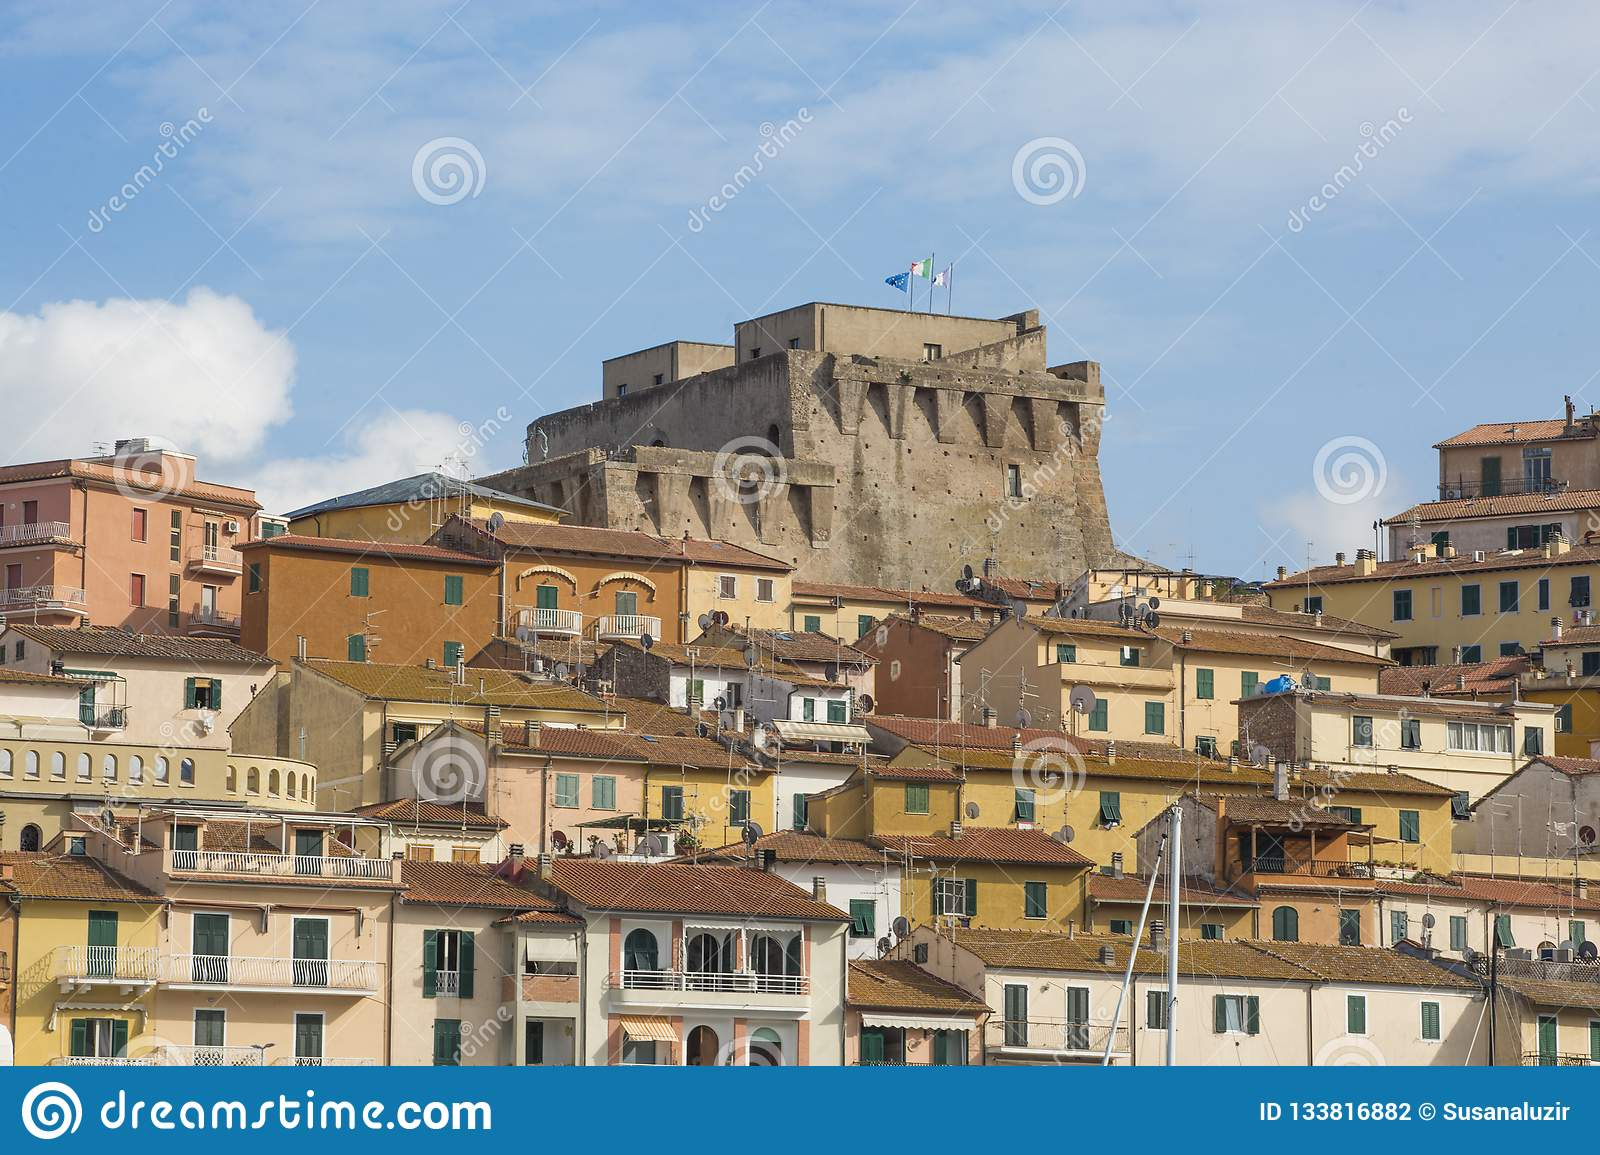 ITALY - SPANISH FORTRESS - 6 SEPTEMBER 2018. The Fortezza Spagnola Spanish Fortress is a coastal fortification that dominates Po